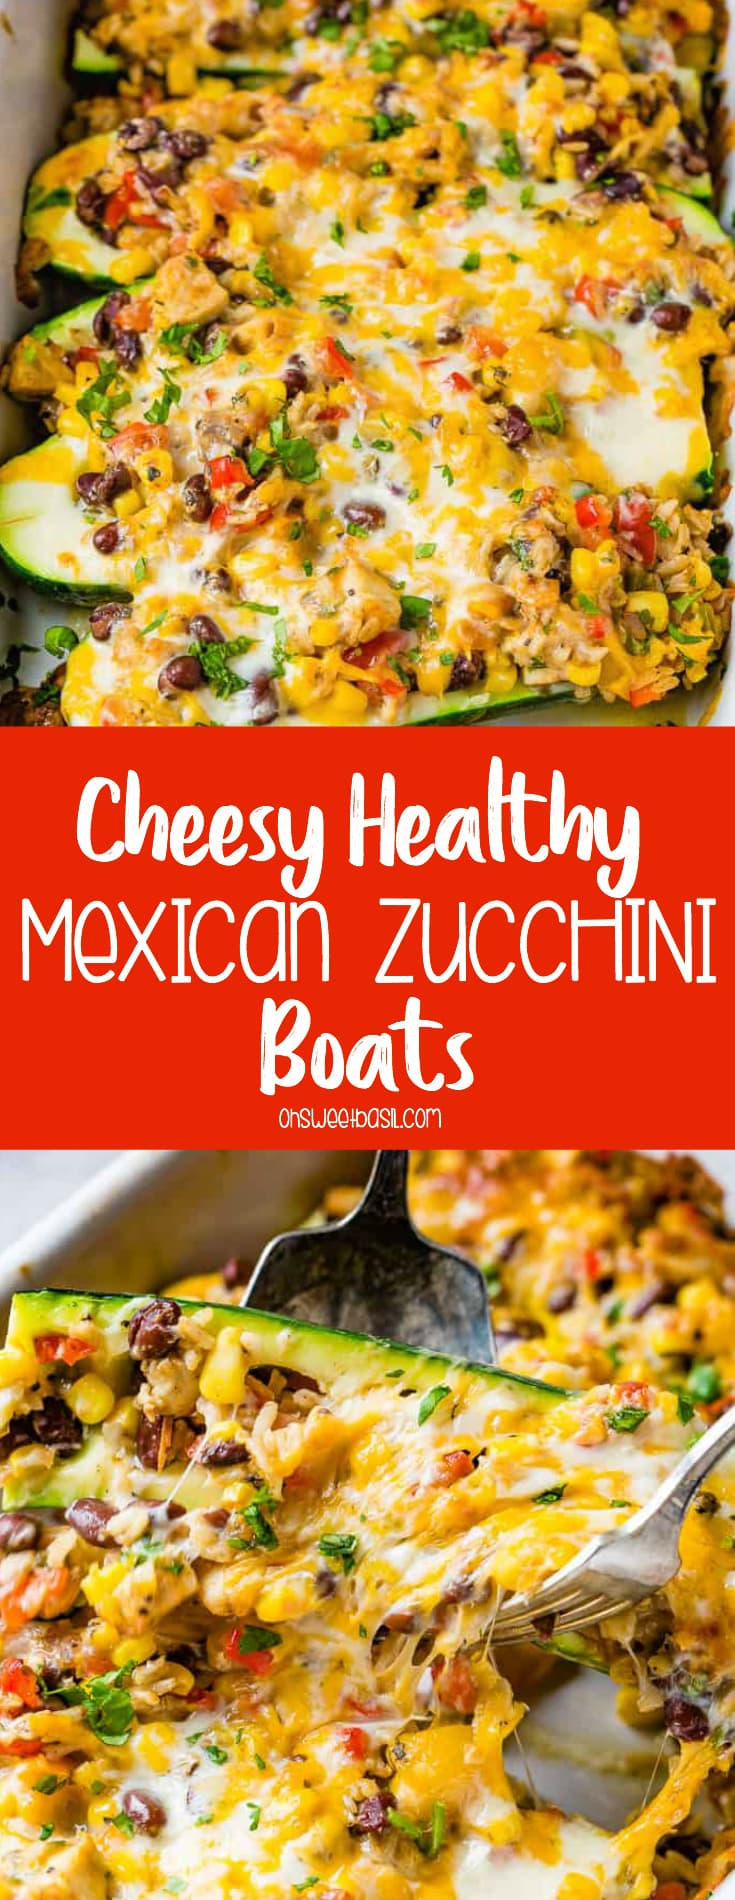 a casserole dish of cheesy healthy mexican zucchini boats with brown rice, peppers, beans, tomatoes, salsa and cheese